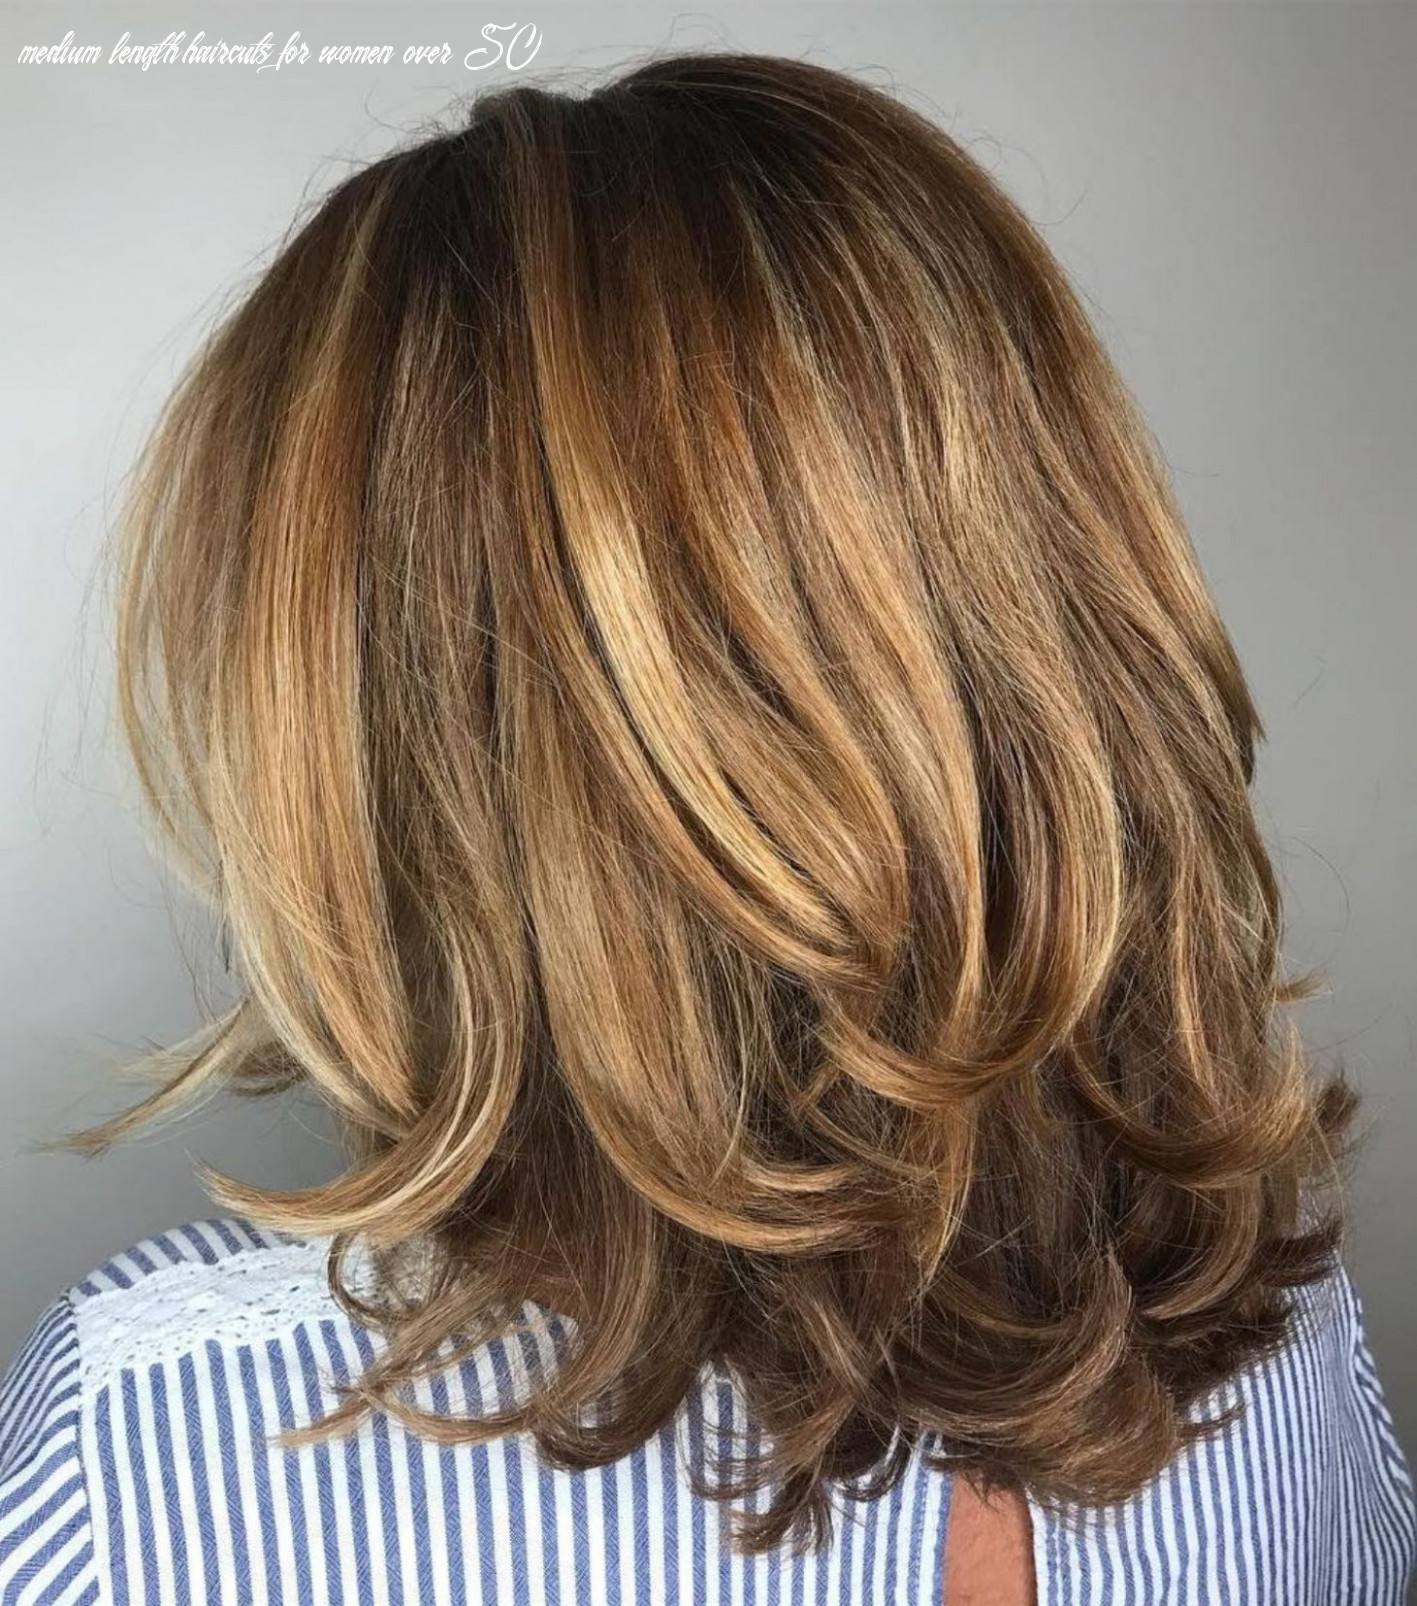 10 modern haircuts for women over 10 with extra zing | modern